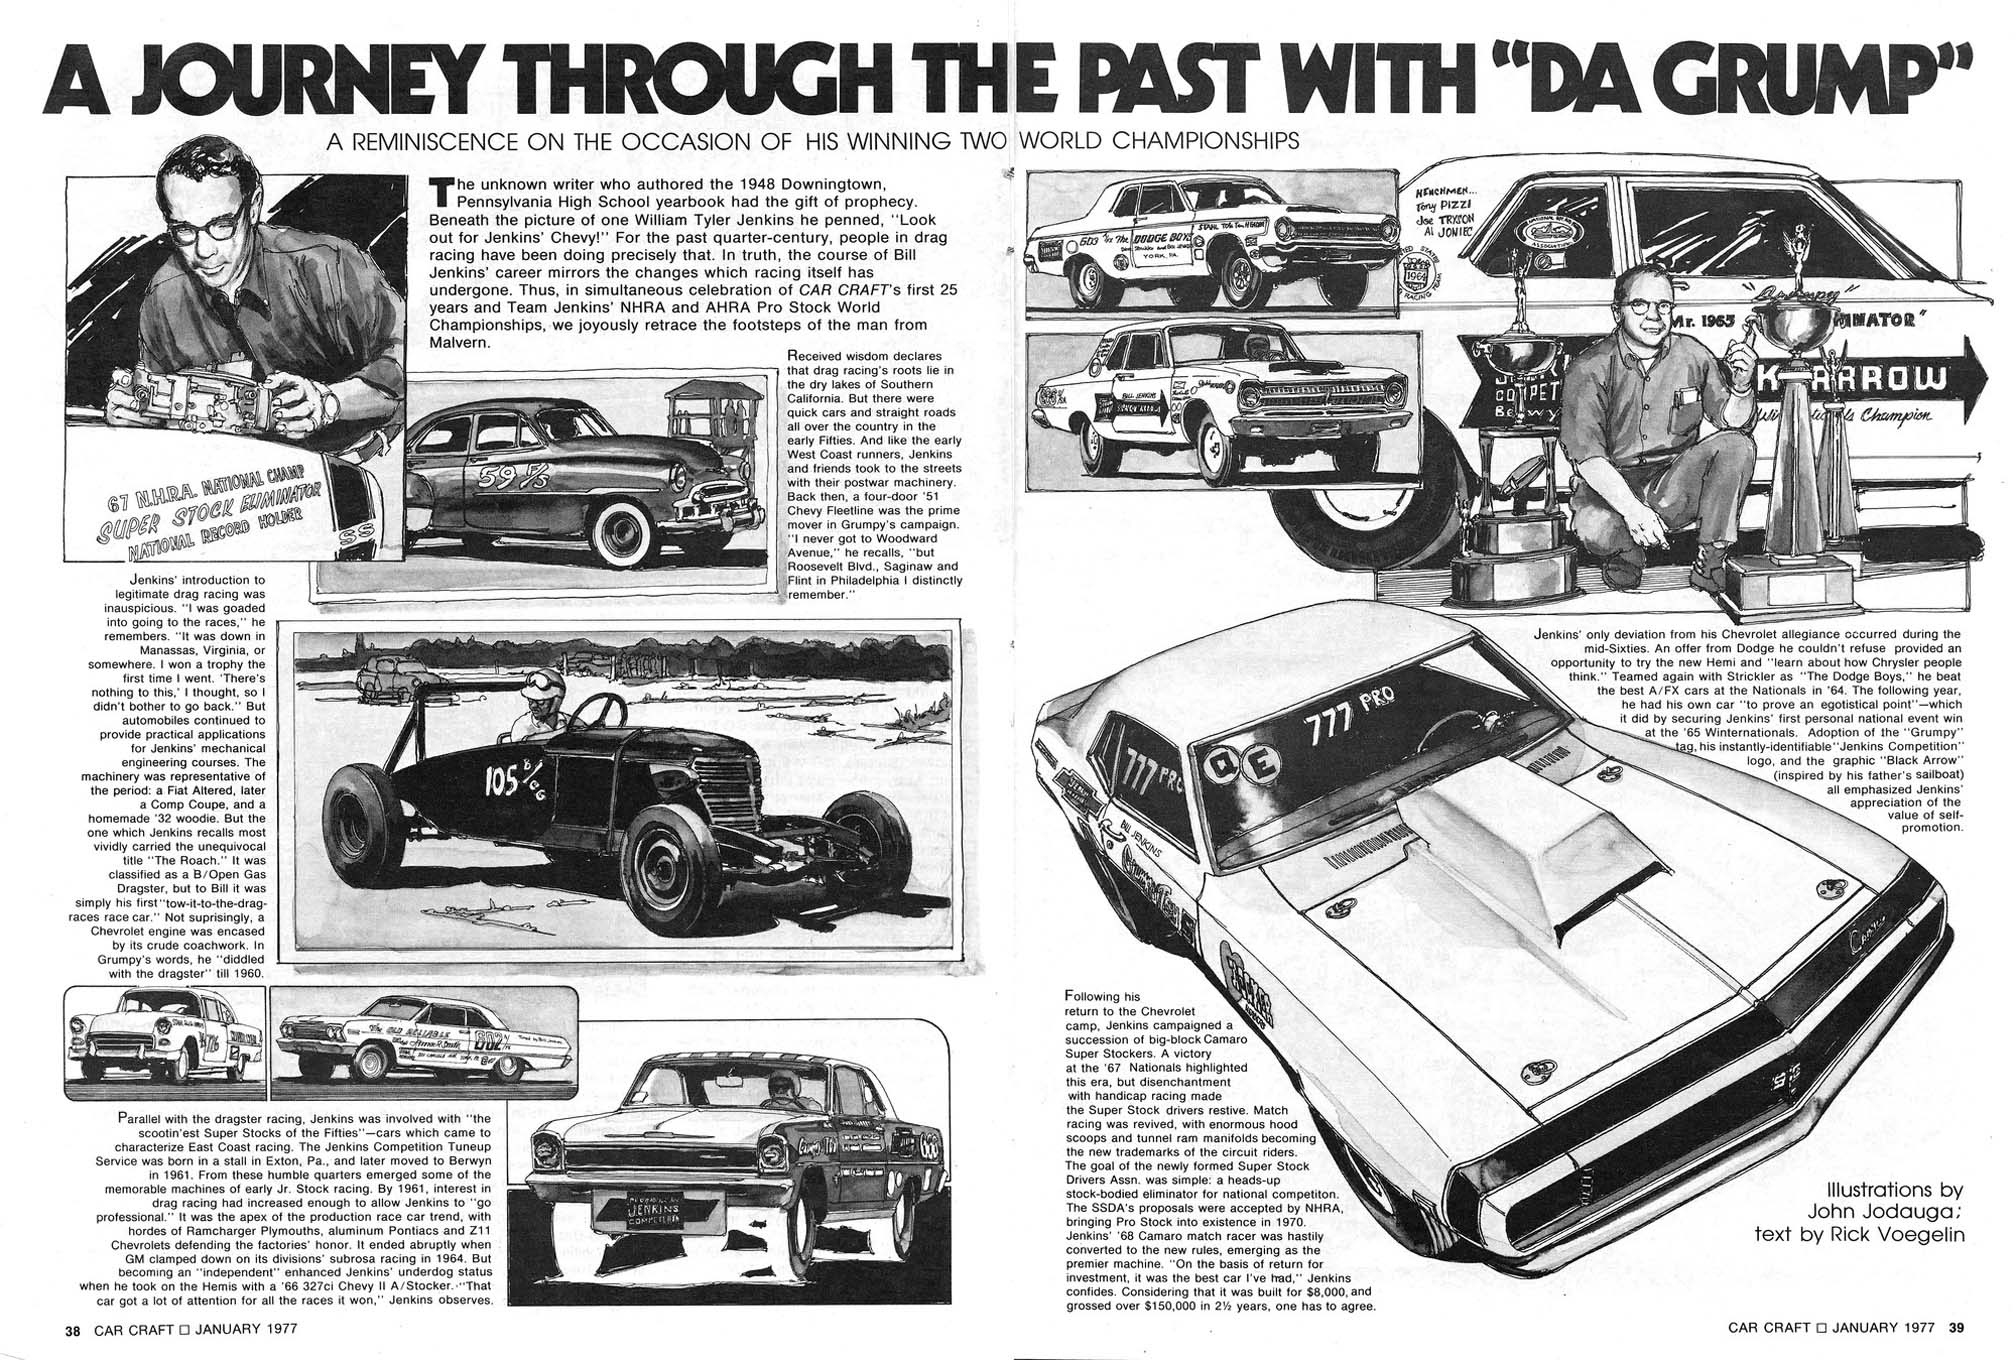 Jodauga collaborated to illustrate several articles written by Car Craft's Rick Voegelin, including this feature story on Bill Jenkins.